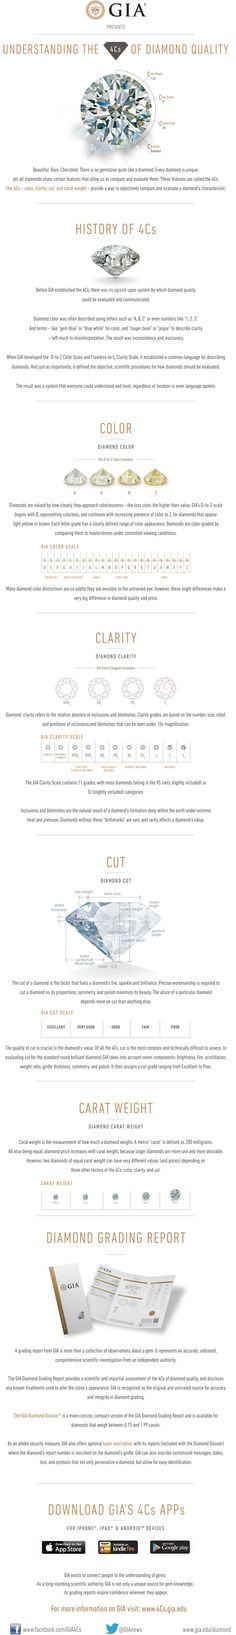 4Cs Diamond Quality Infographic. GIA (020414)